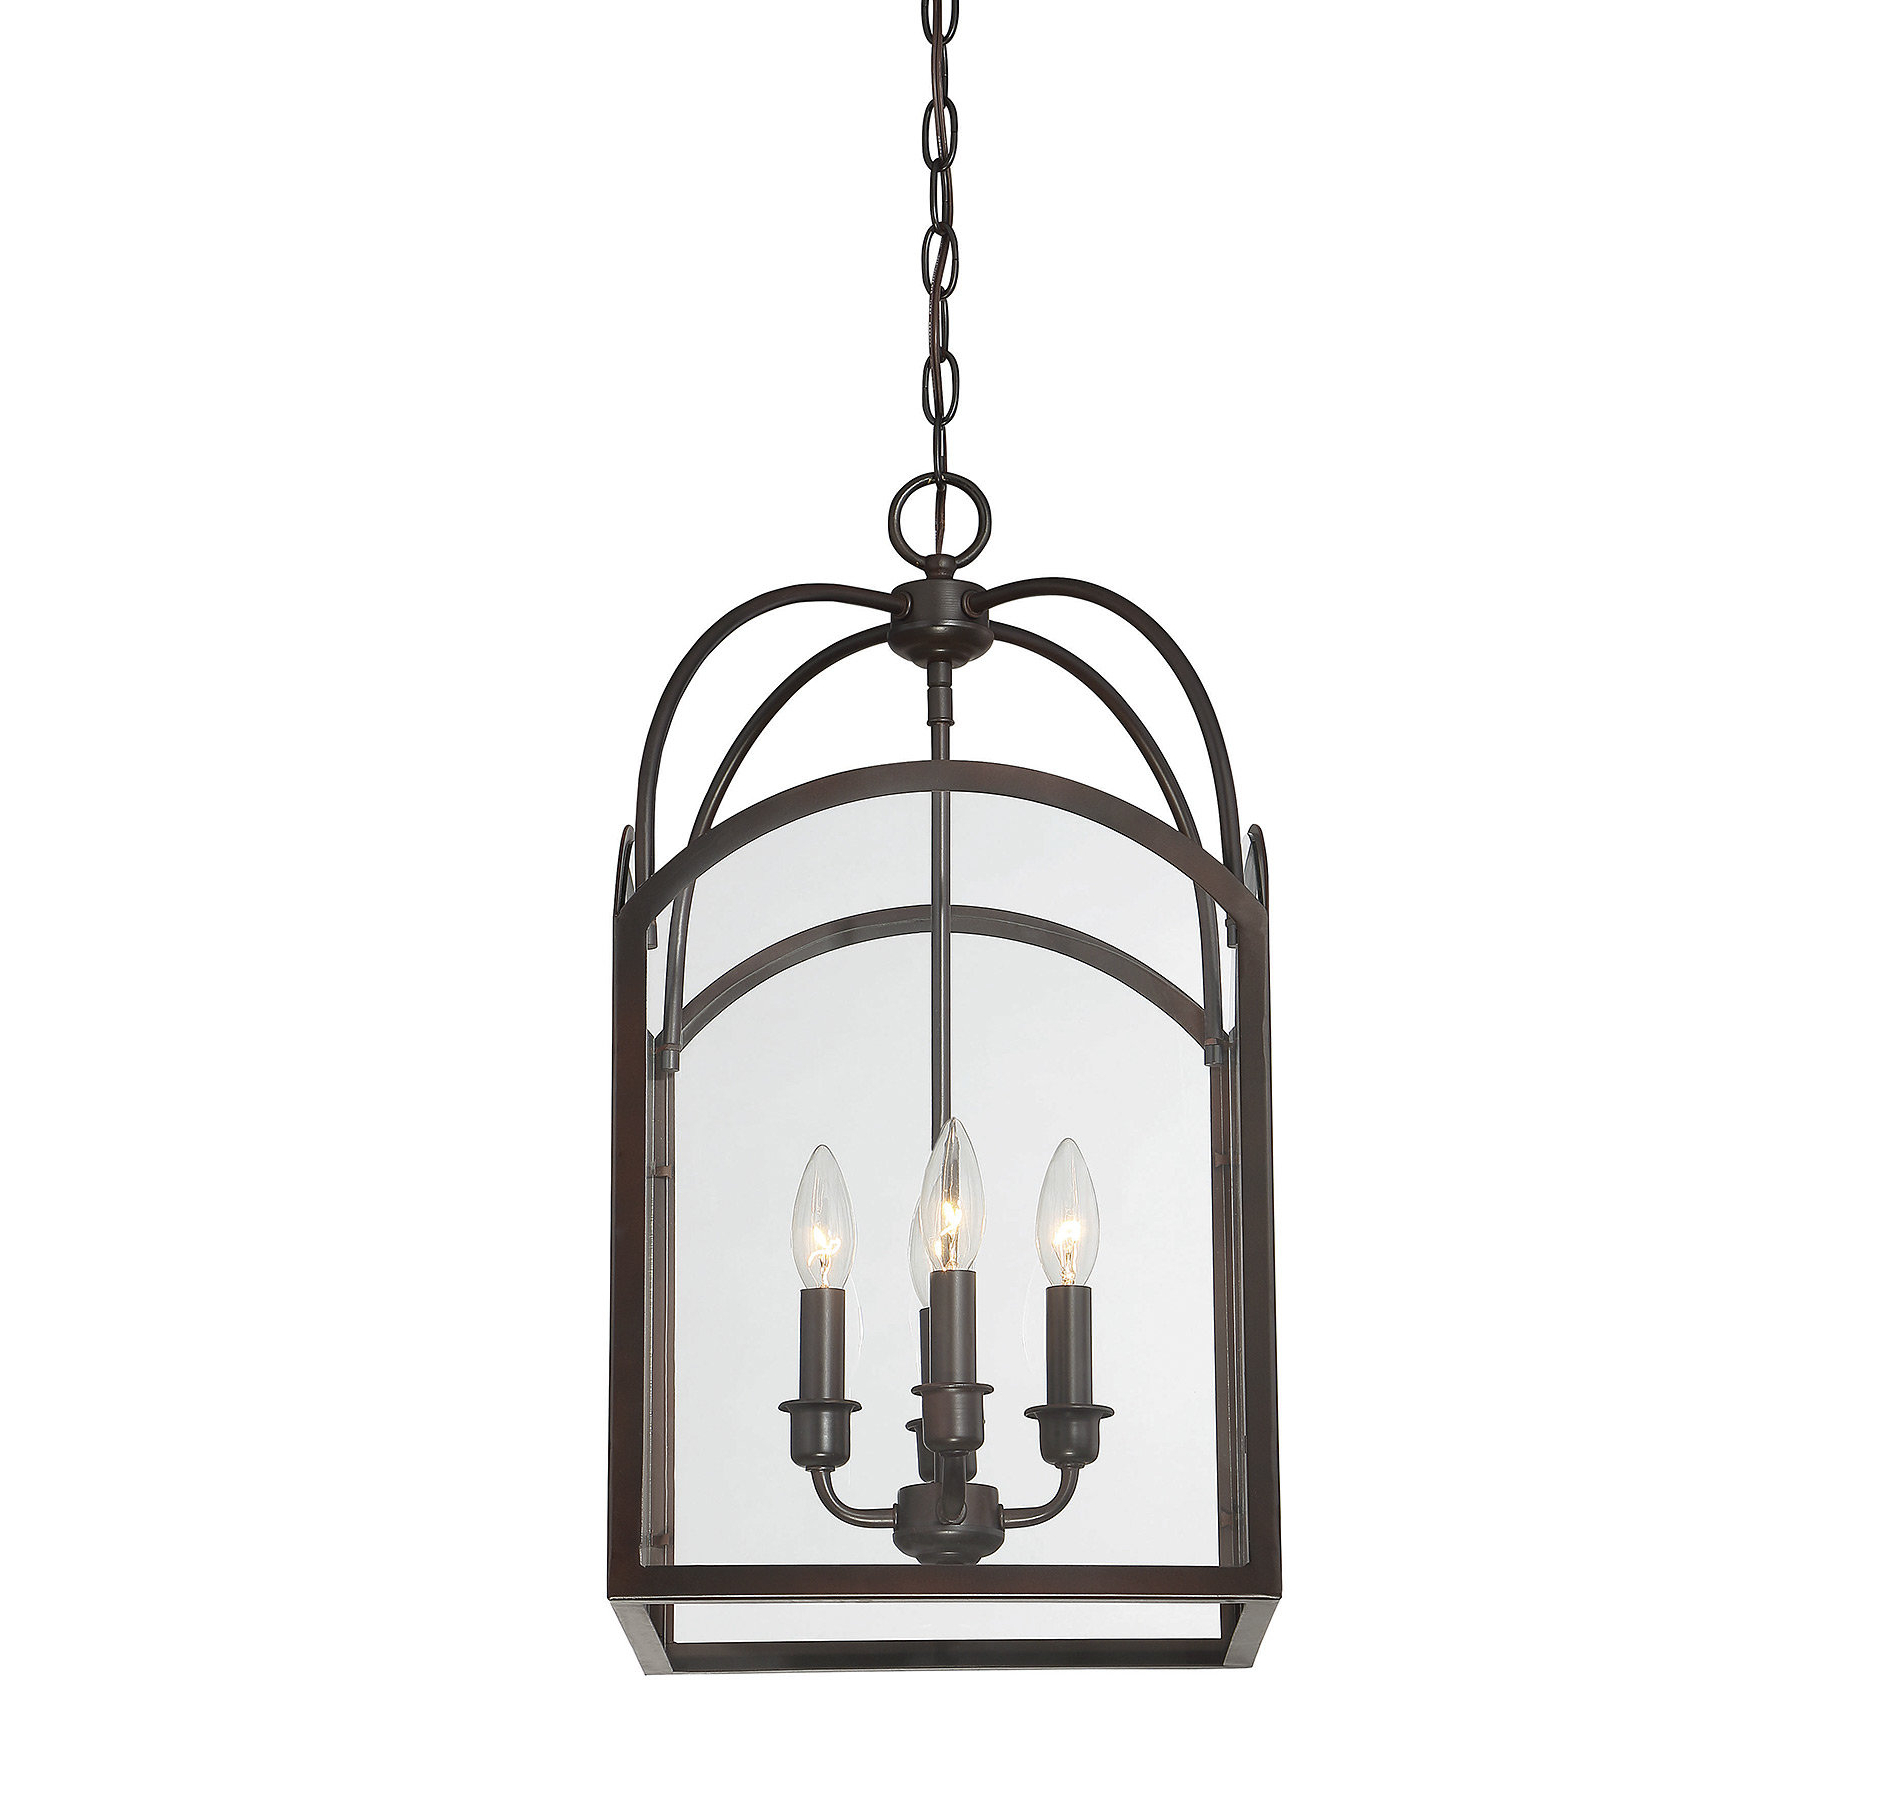 Chauvin 3 Light Lantern Geometric Pendants In Recent Mount Airy 4 Light Lantern Geometric Pendant (View 20 of 25)